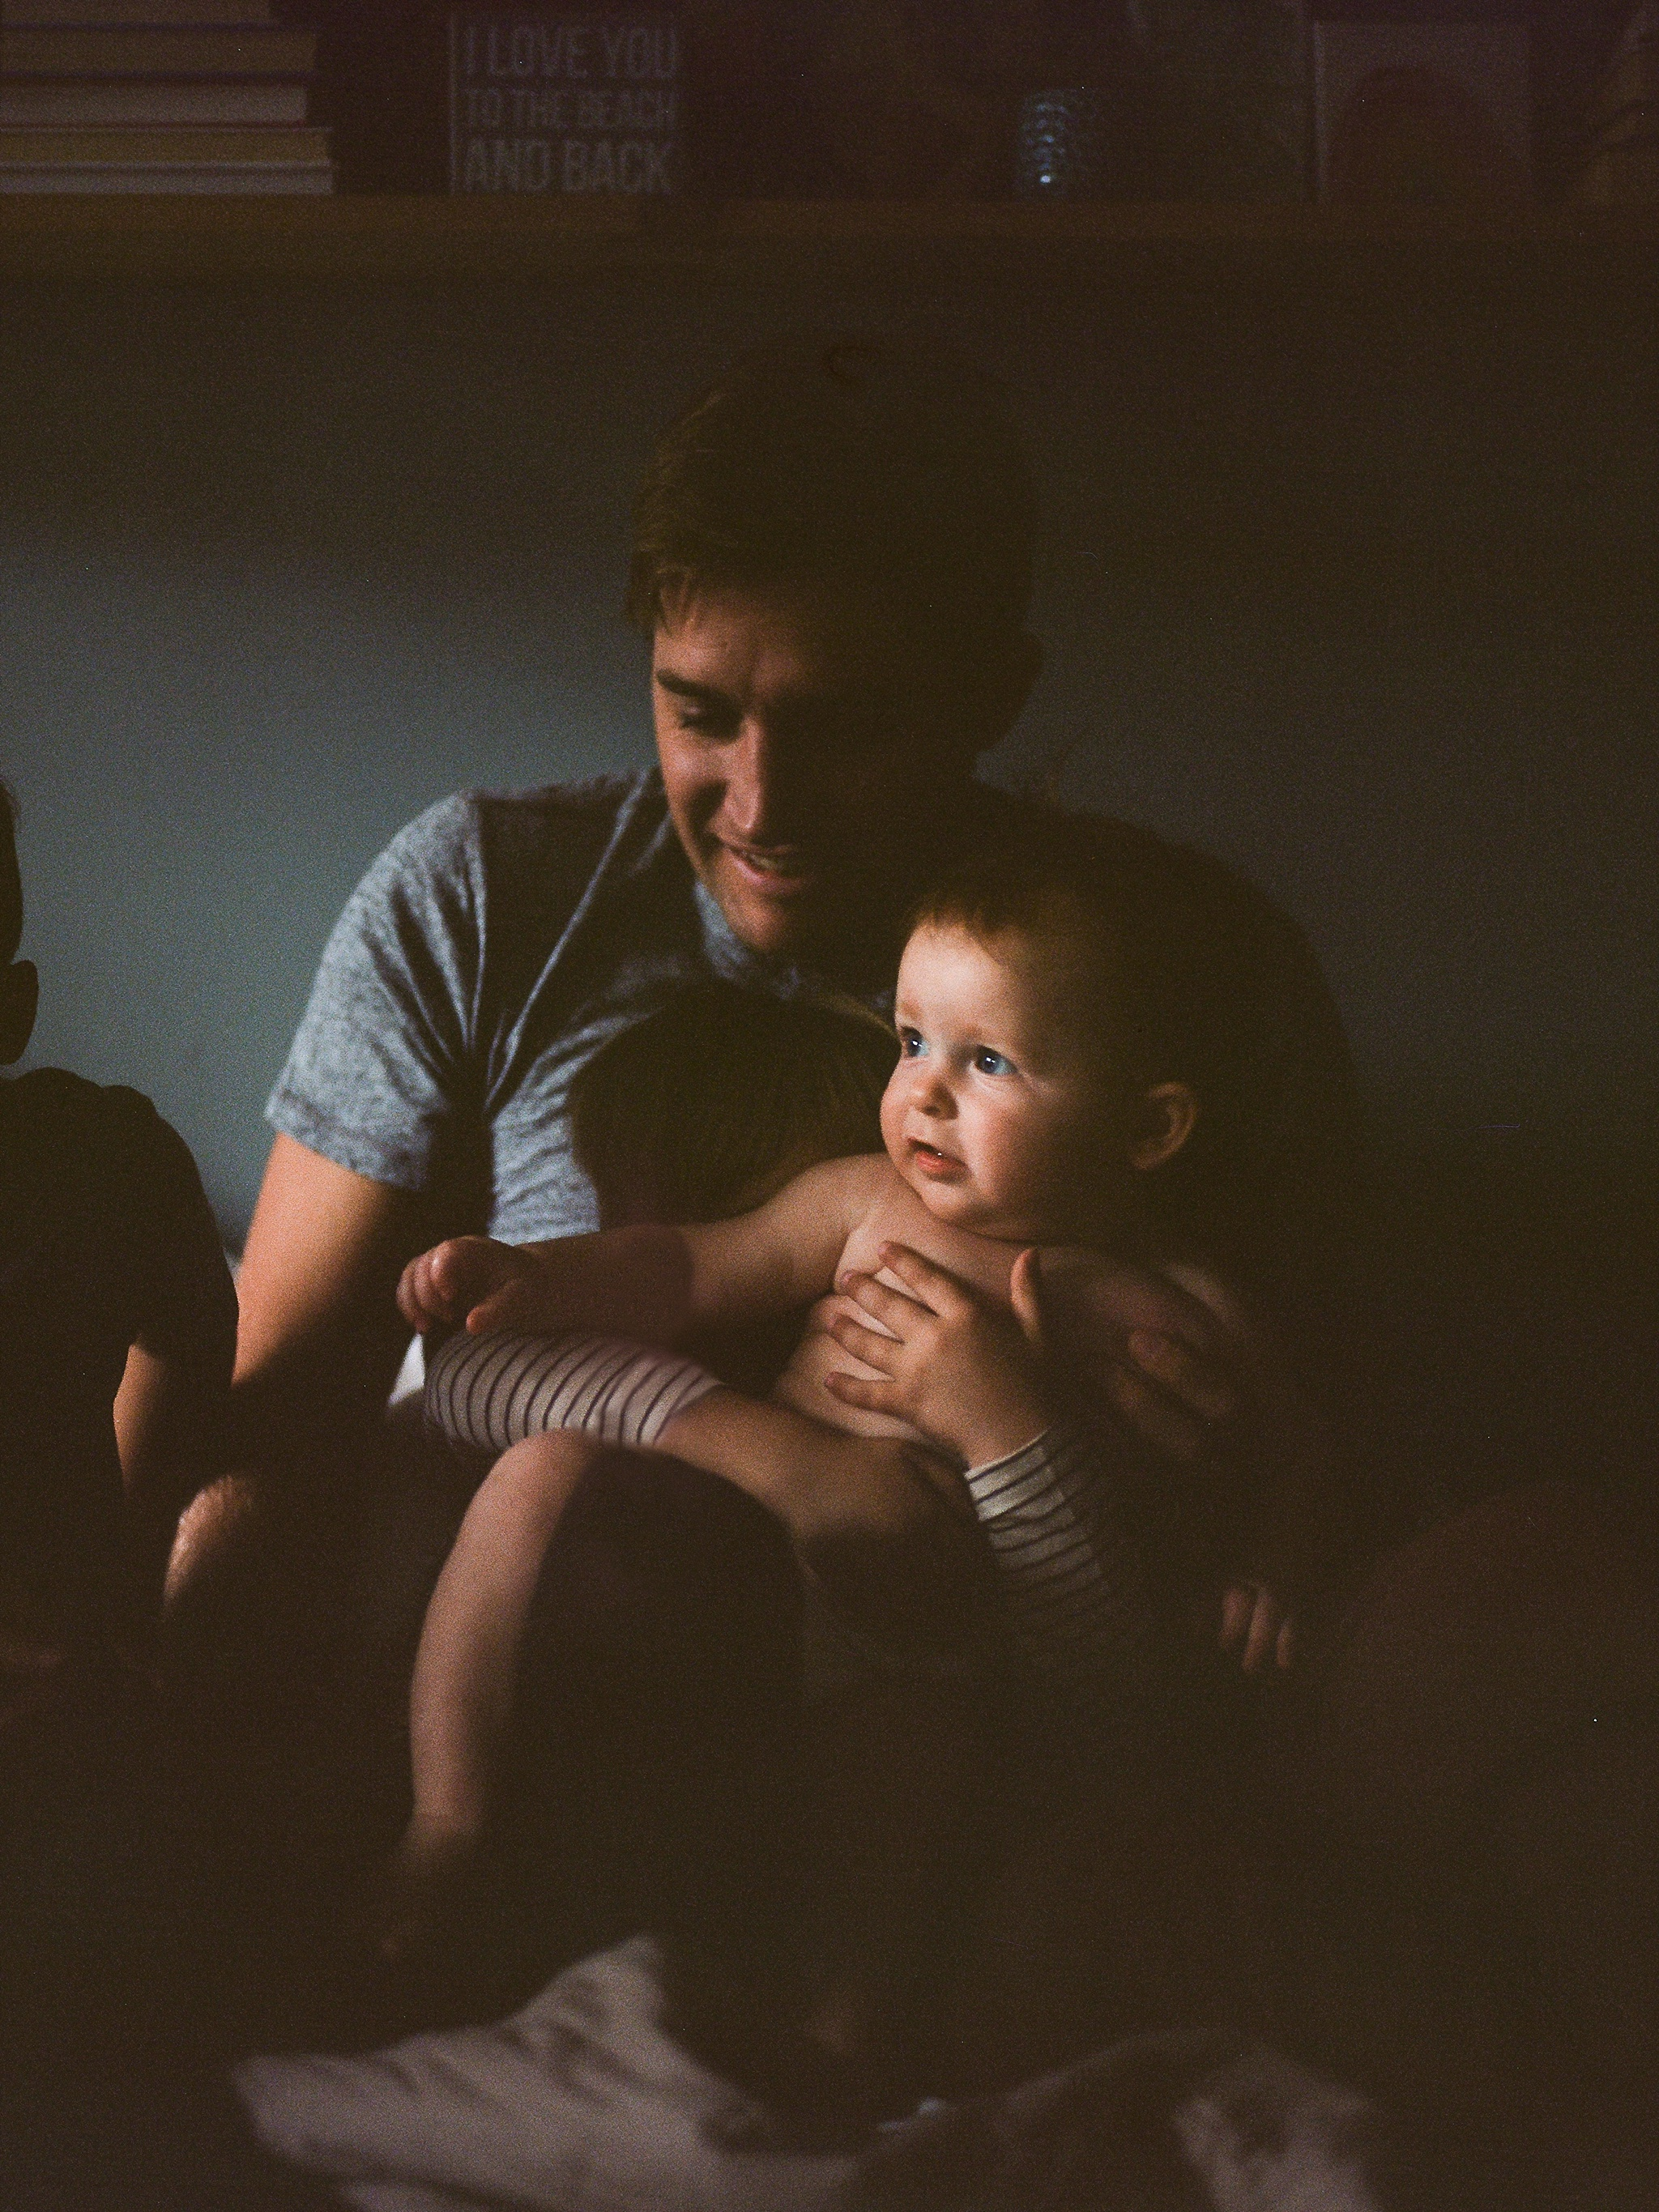 Family-Film-Photographer-5.jpg